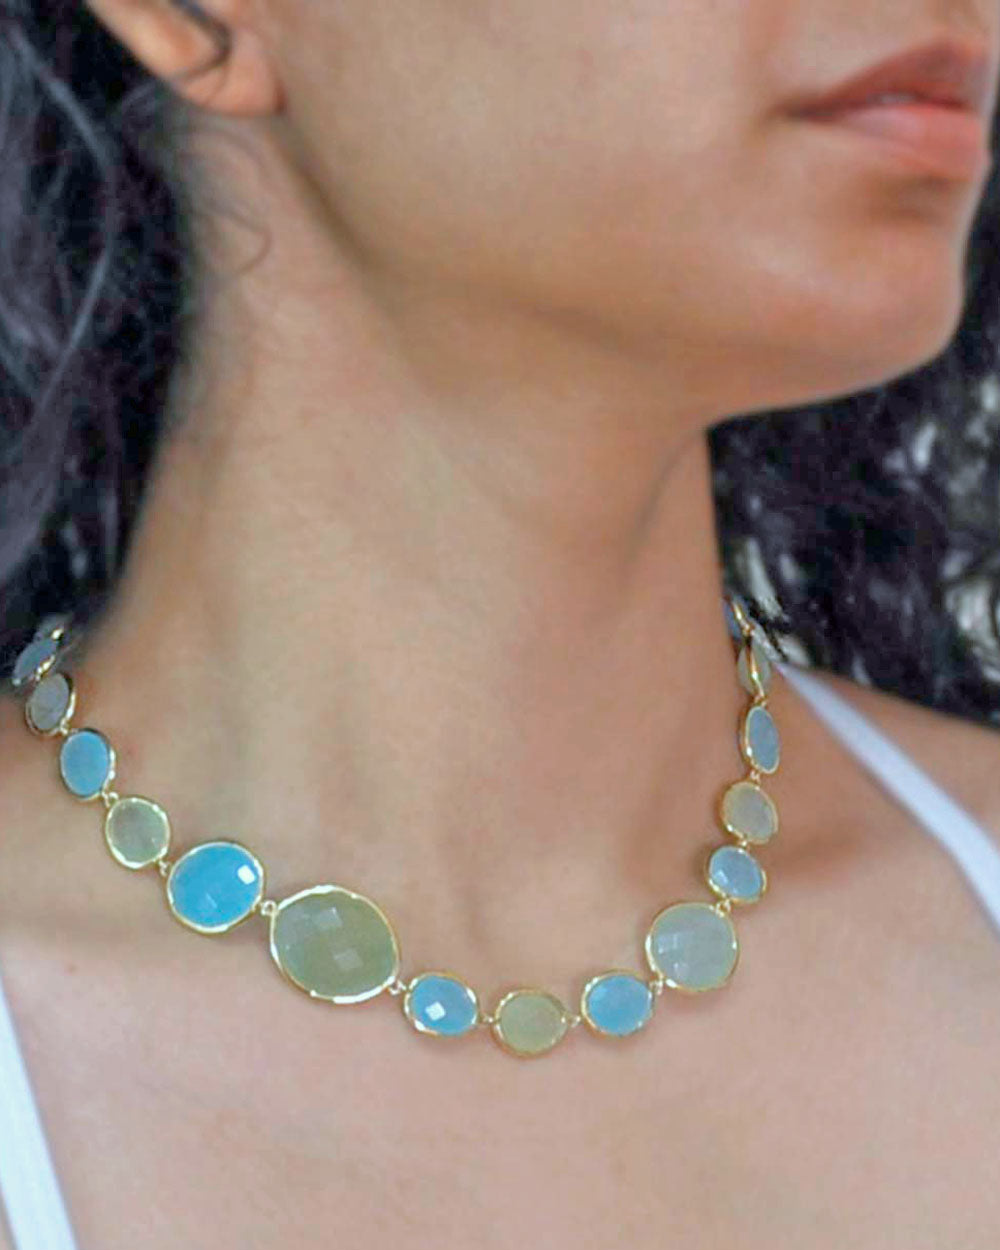 Dew Drops Multi-gem Peruvian Opal Necklace